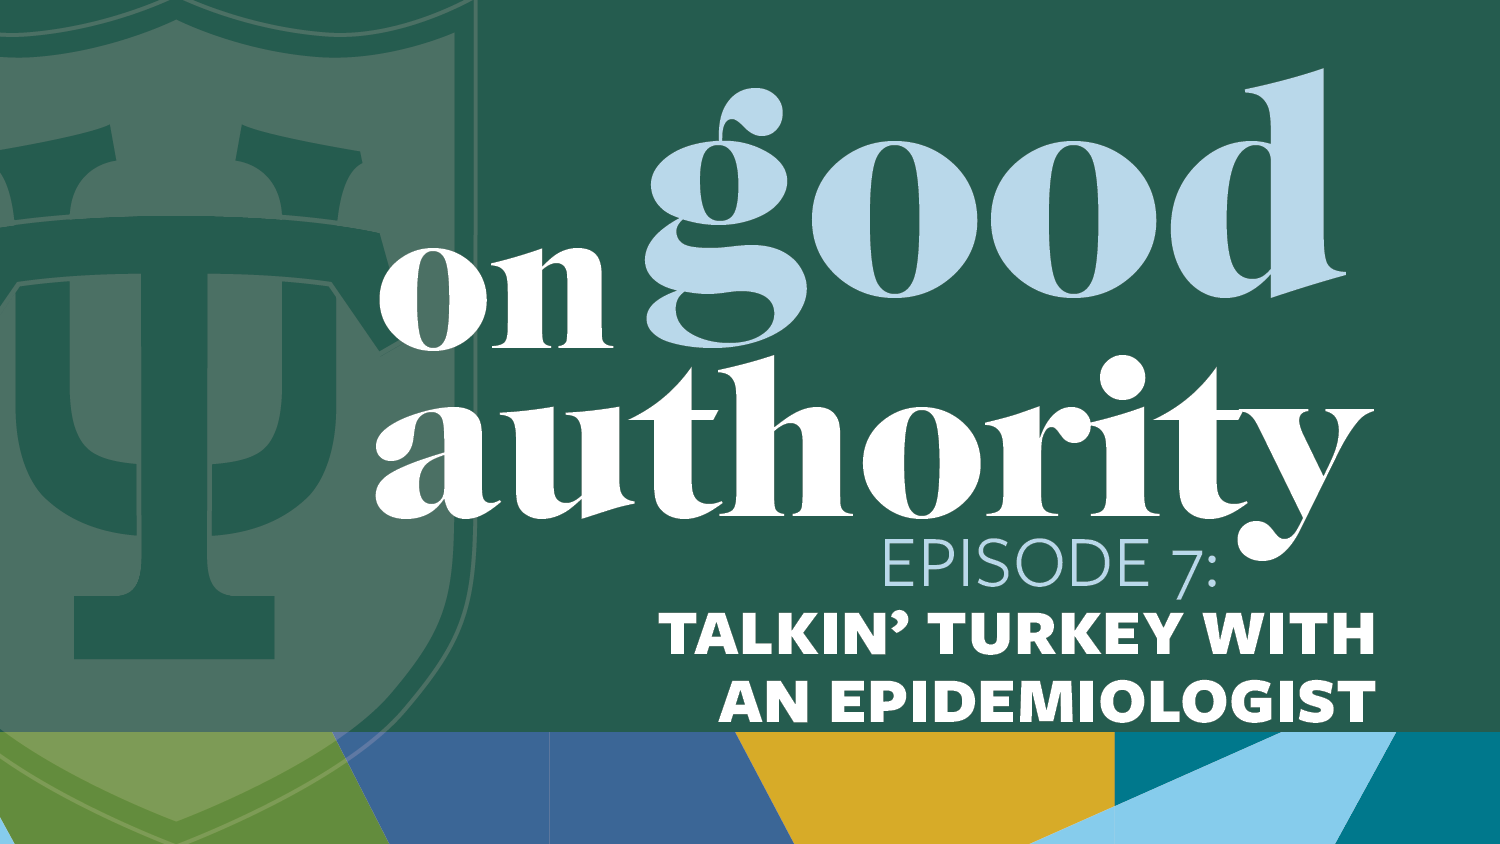 Episode 7: Talkin' Turkey with an Epidemiologist